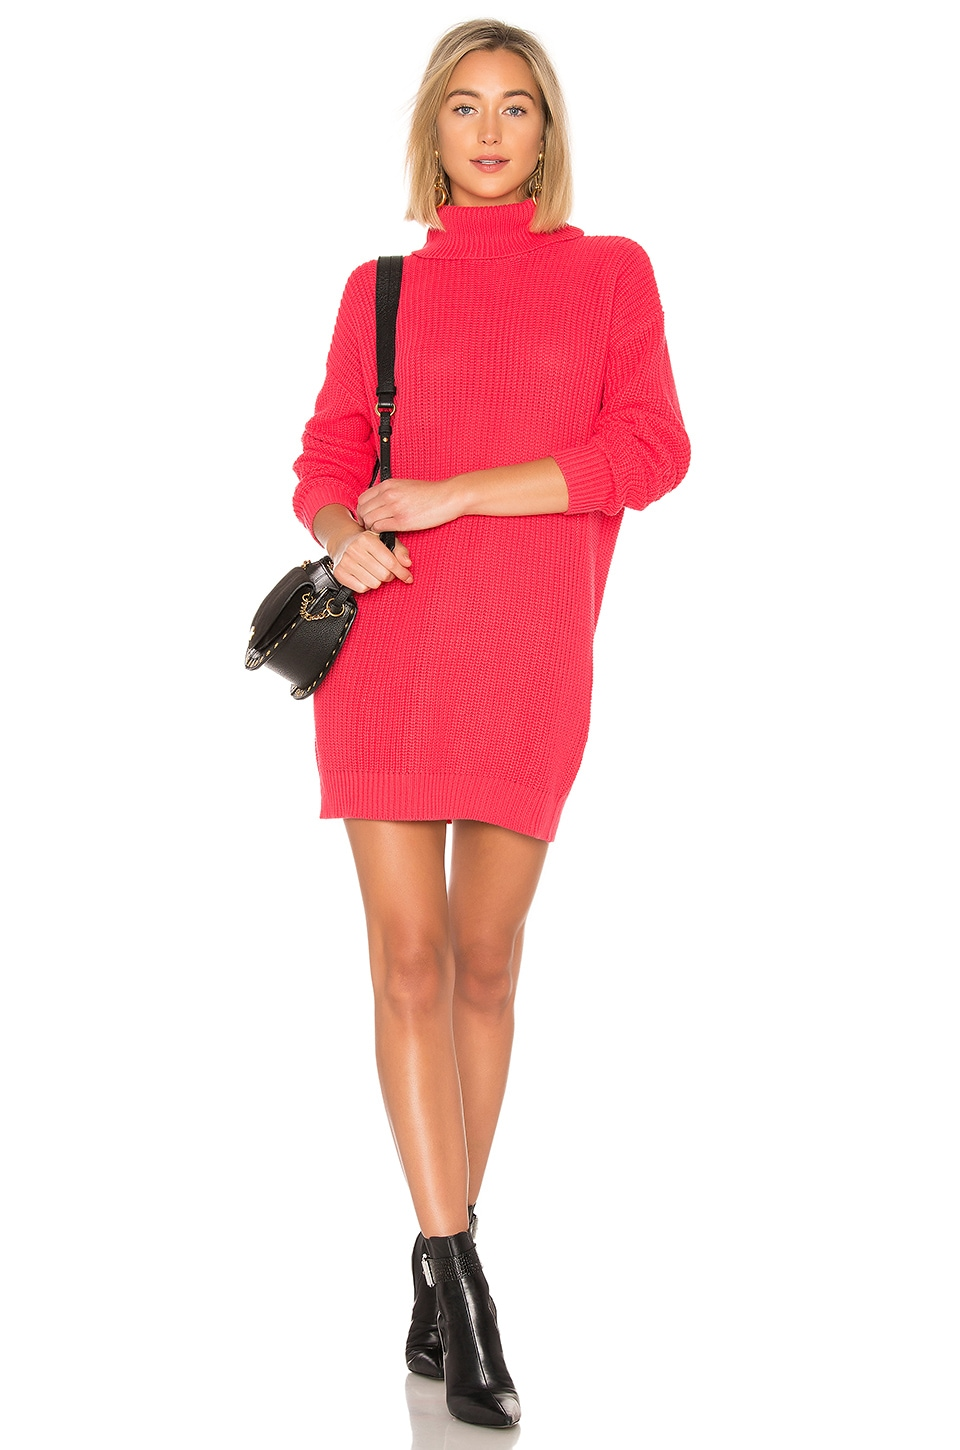 Lovers + Friends Christina Sweater Dress in Magenta